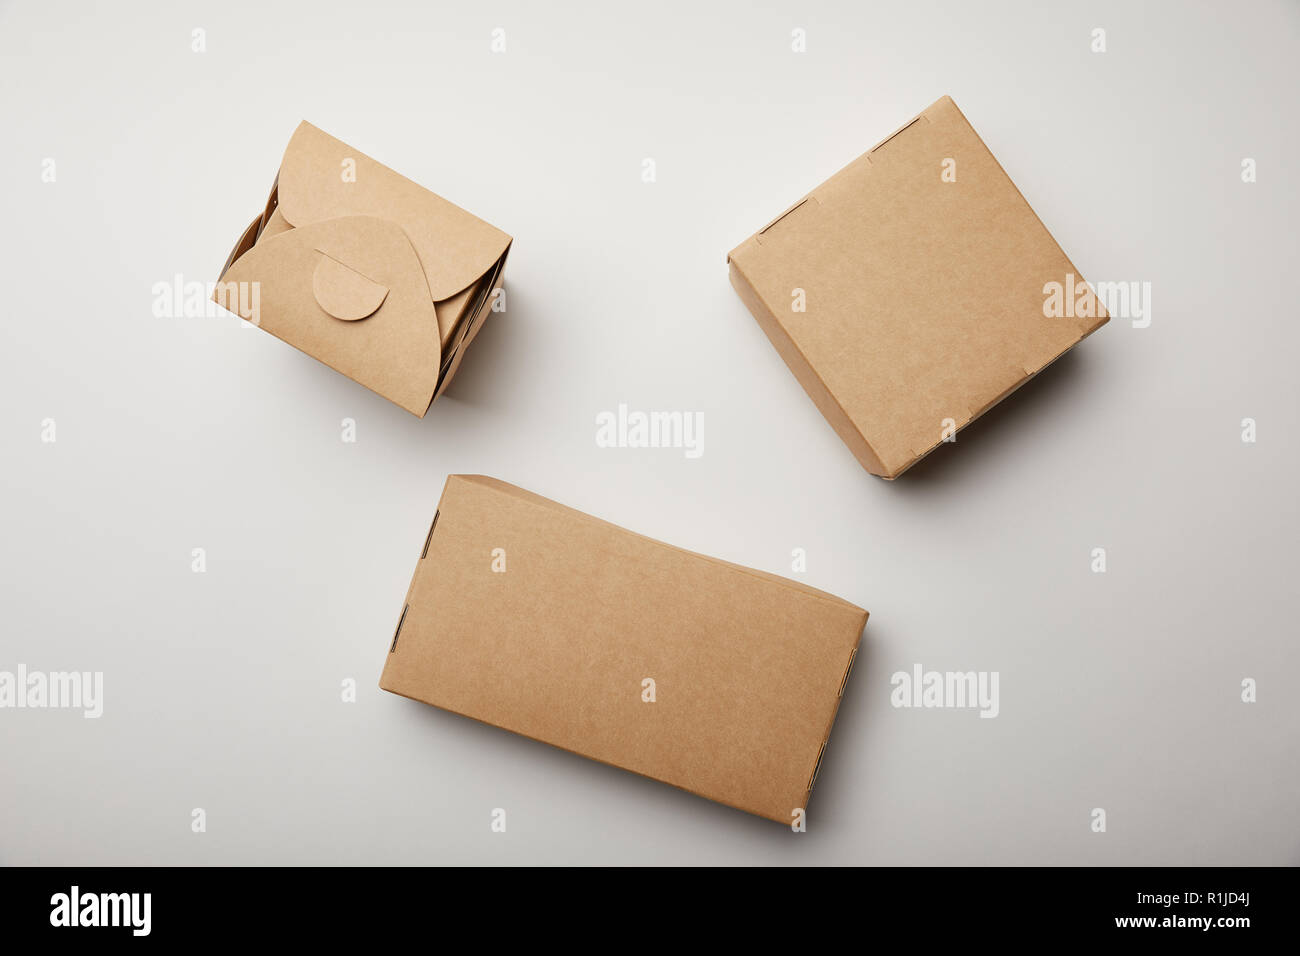 Top View Of Wok Box And Food Delivery Boxes On White Surface Stock